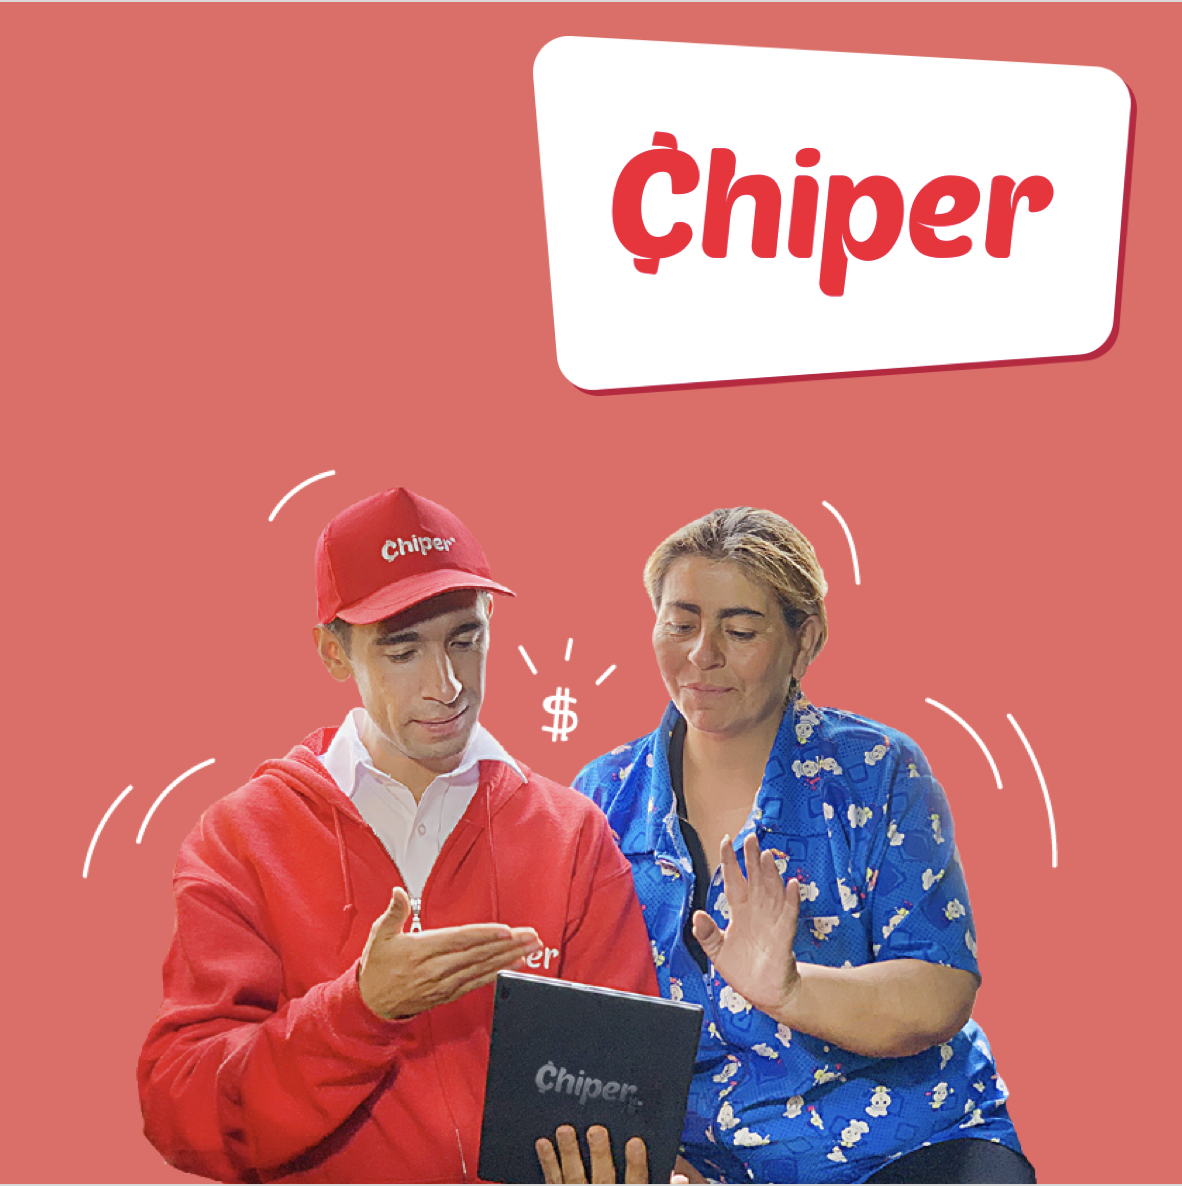 Chiper   Connects Latin American mom and pop shop owners with manufacturers and suppliers